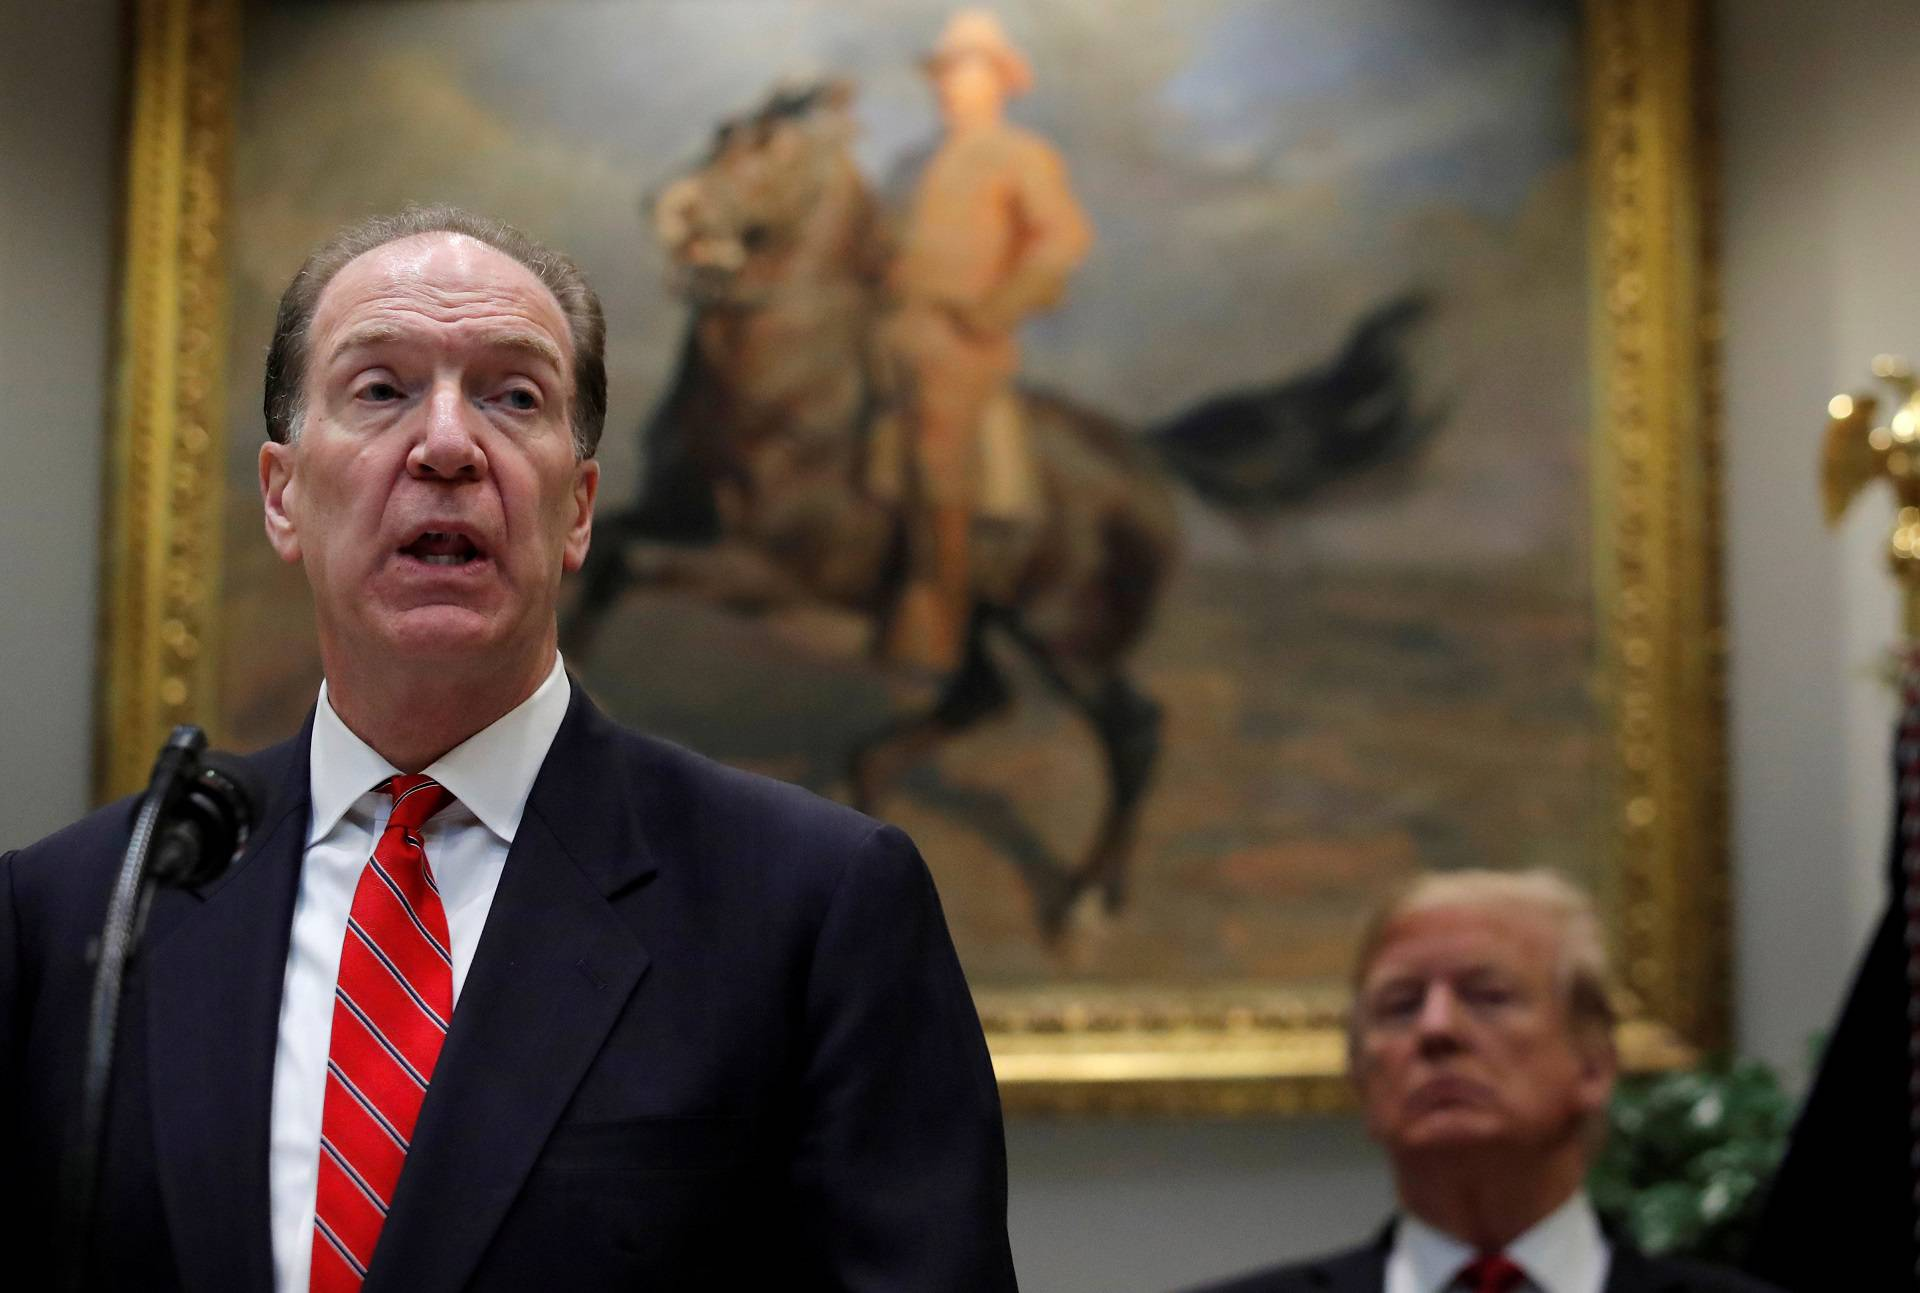 FILE PHOTO: U.S. candidate in election for the next President of the World Bank David Malpass speaks at an event with U.S. President Donald Trump at the White House in Washington